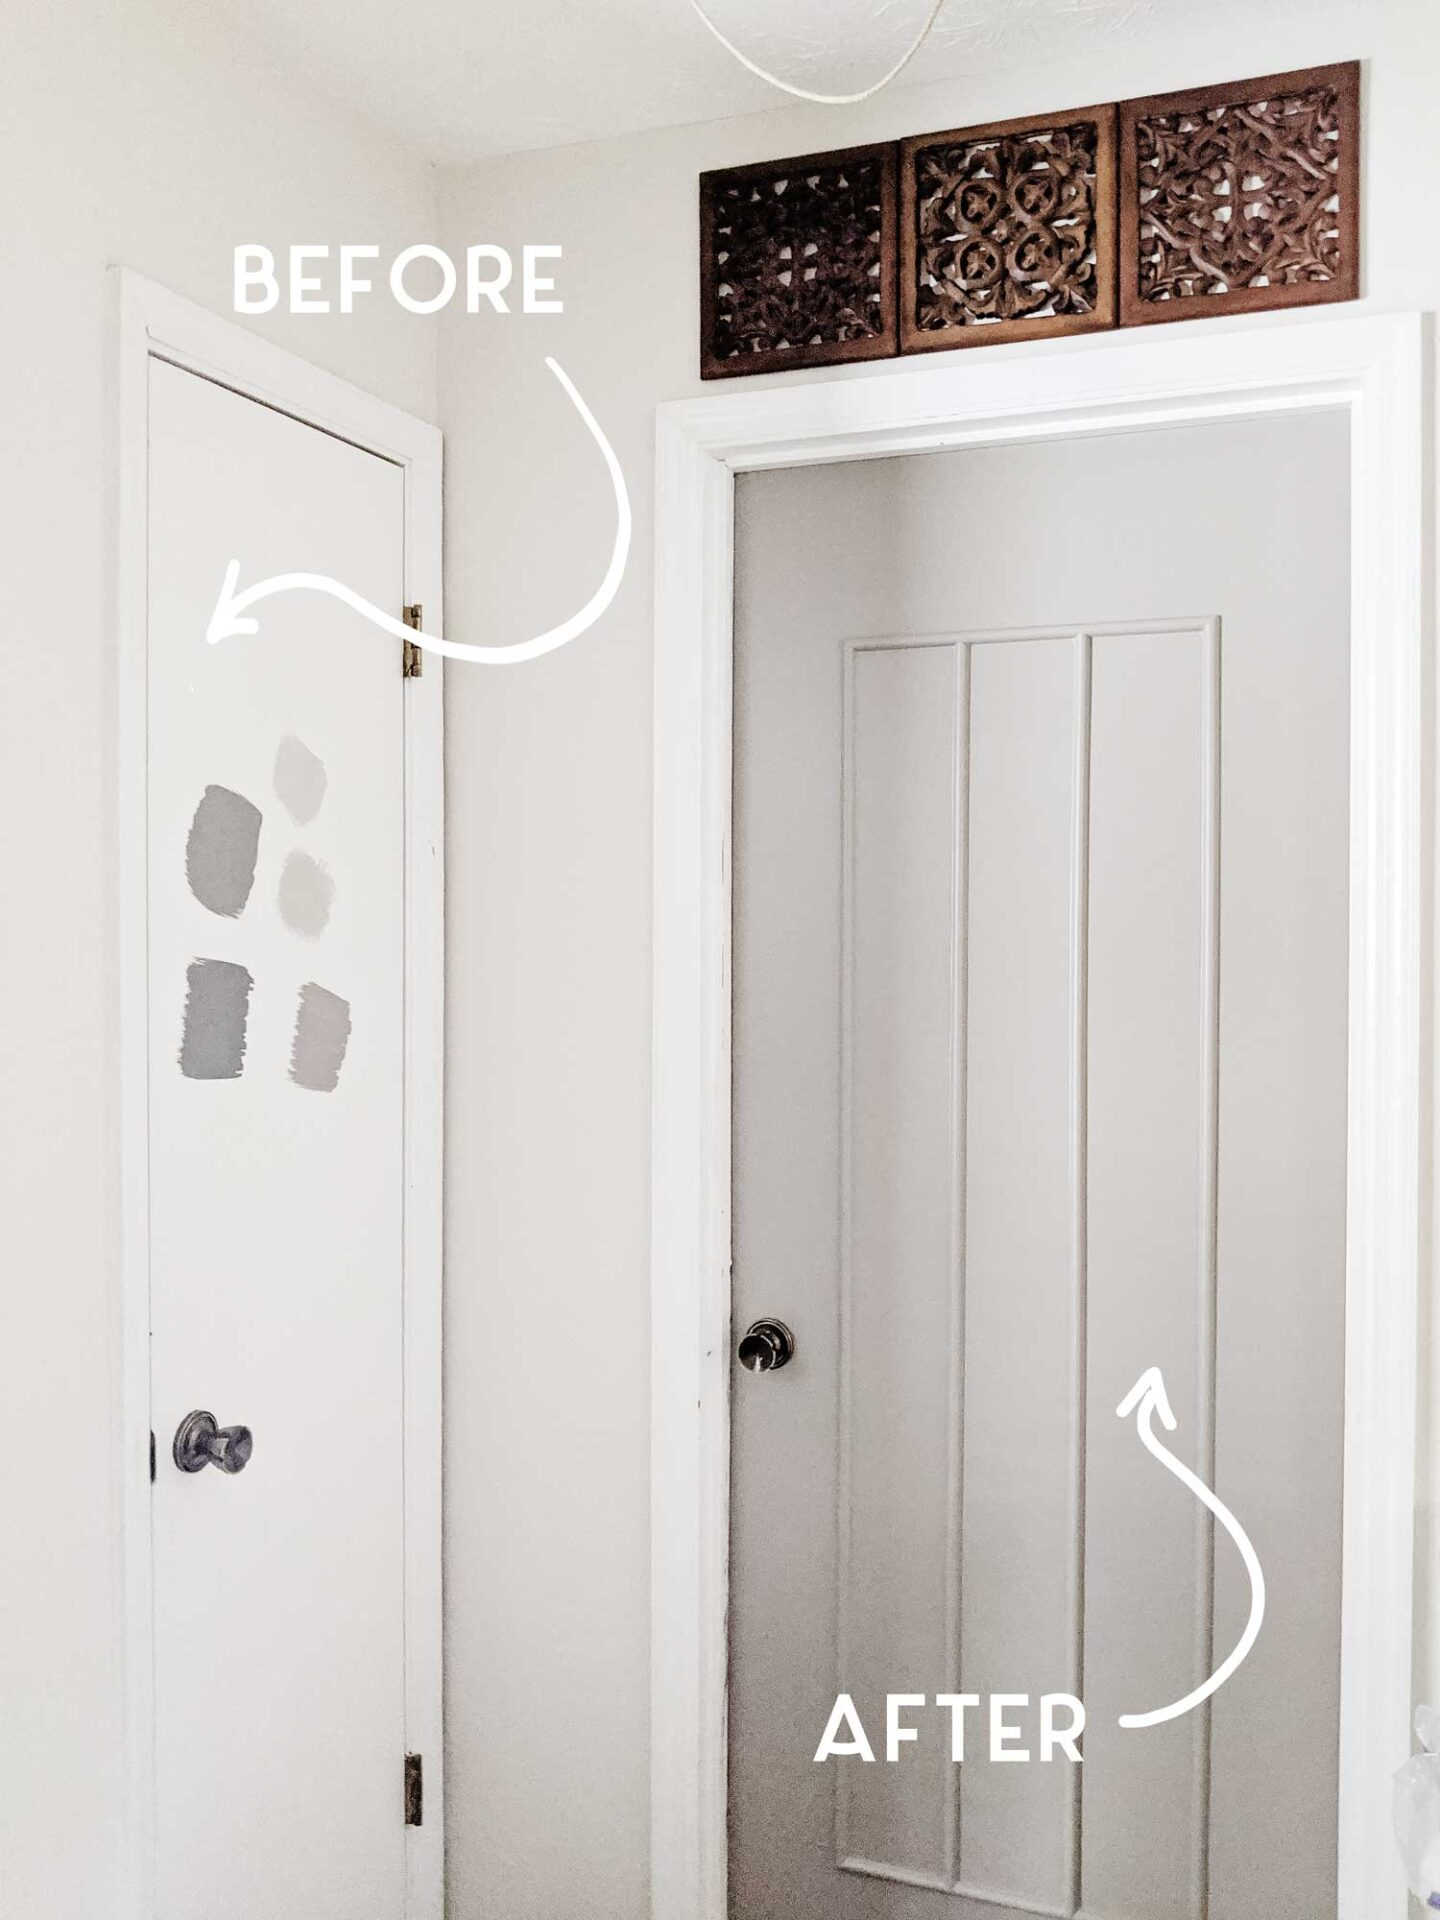 before and after adding door trim and paint - tutorial next week